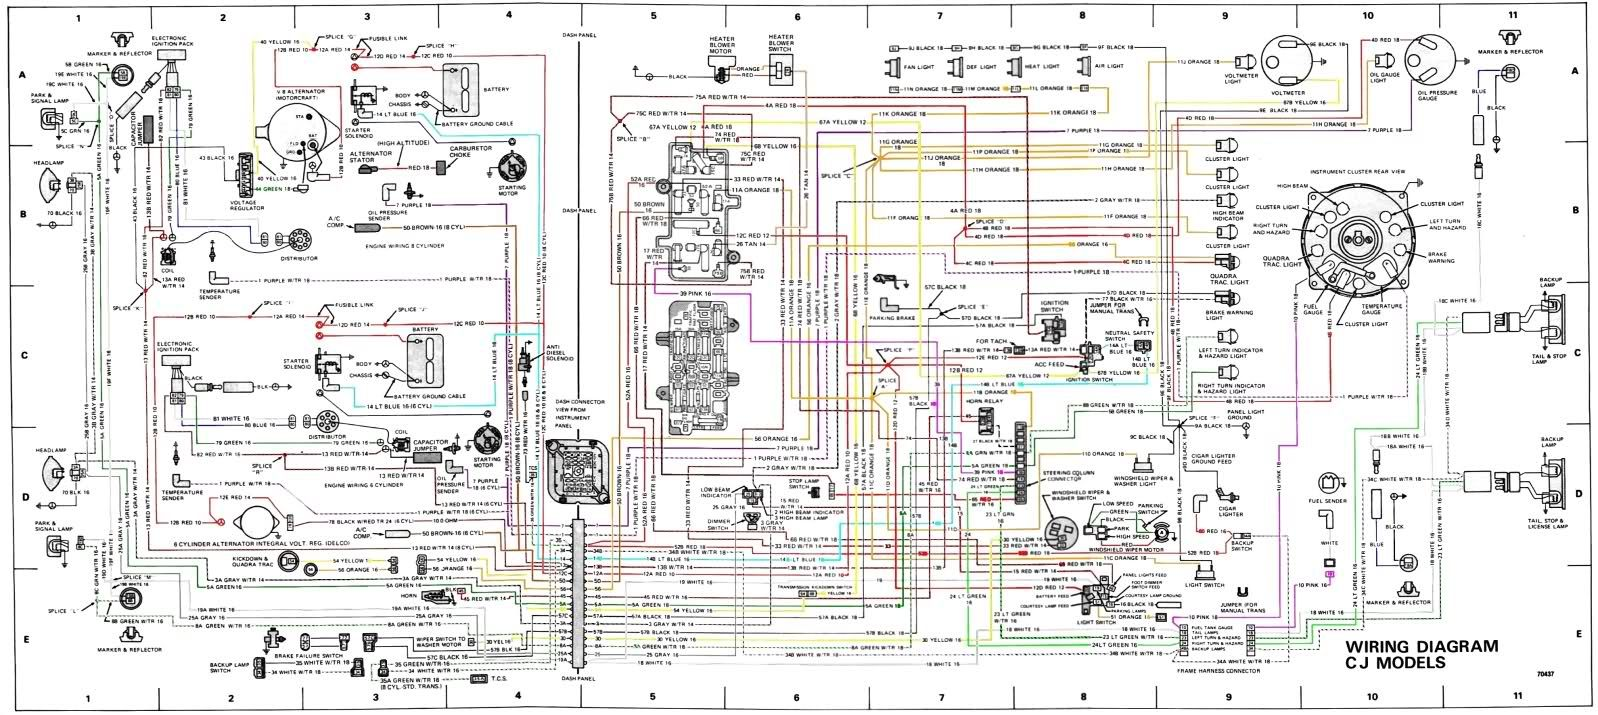 medium resolution of jeep cj7 wiring diagram wiring diagram m6jeep cj7 wiring diagram unlimited wiring diagram jeep cj7 fuel